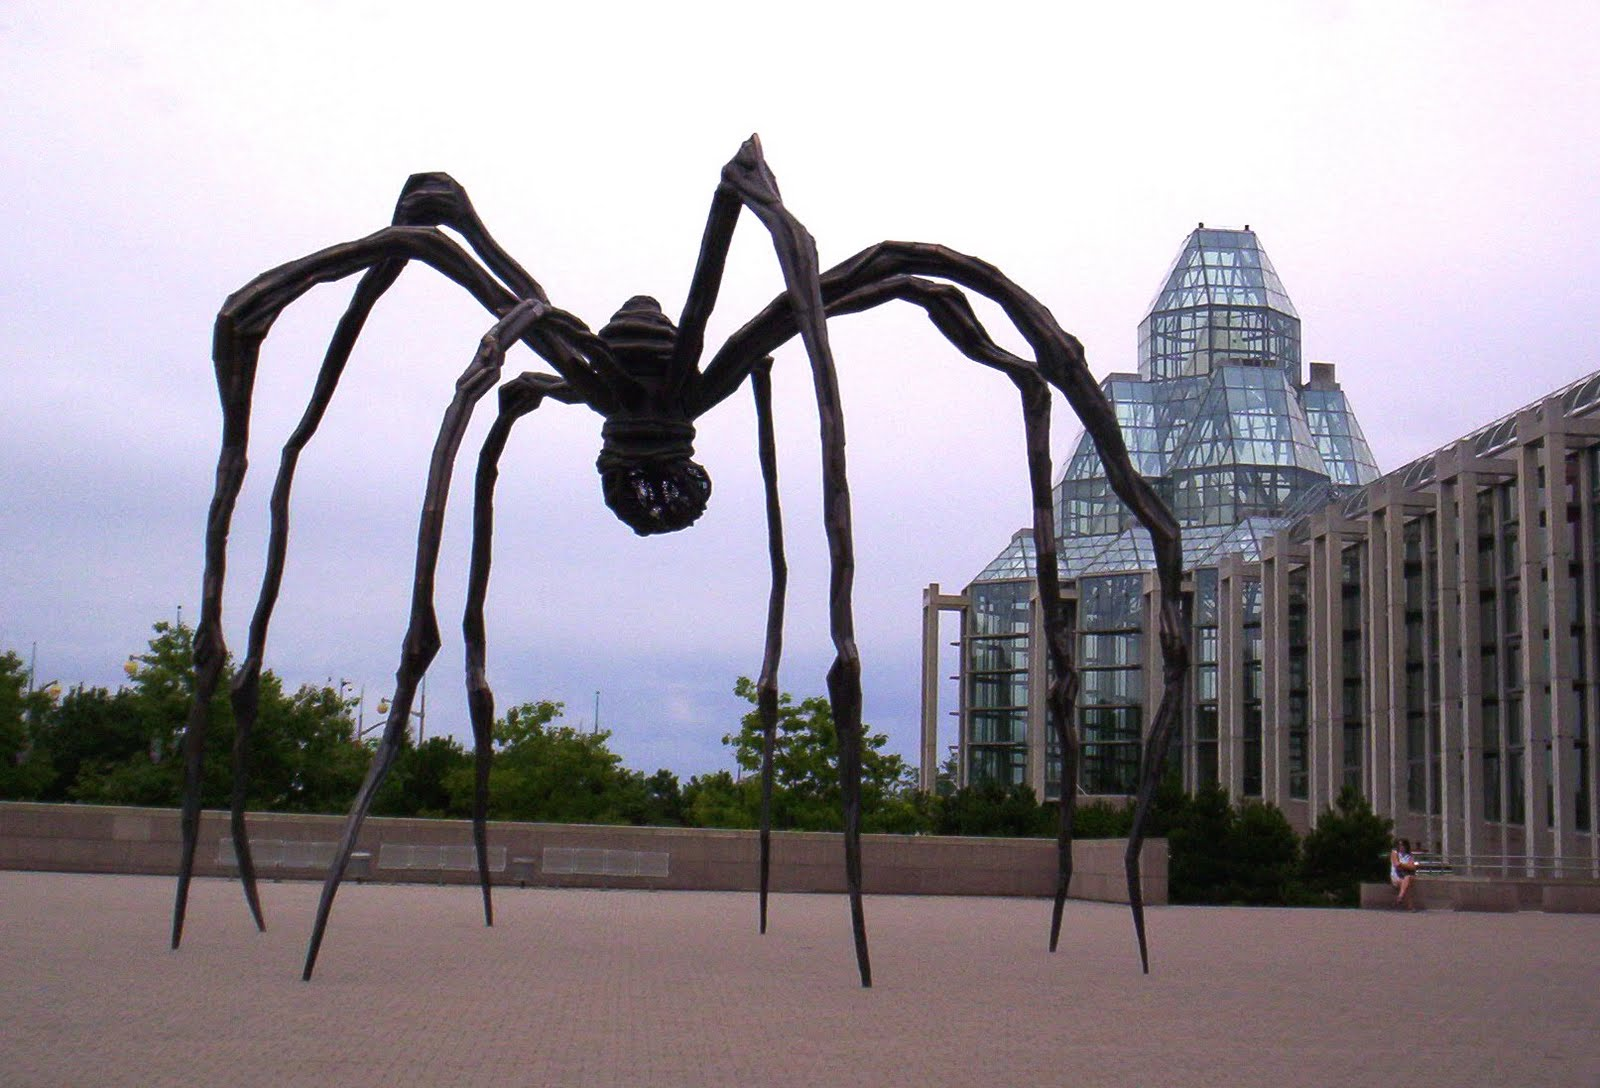 maman louise bourgeois Like a creature escaped from a dream, or a larger-than-life embodiment of a secret childhood fear, the giant spider maman (1999) casts a powerful physical and psychological shadow over 30 feet high, the mammoth sculpture is one of the most ambitious undertakings in the long career of louse bourgeois.